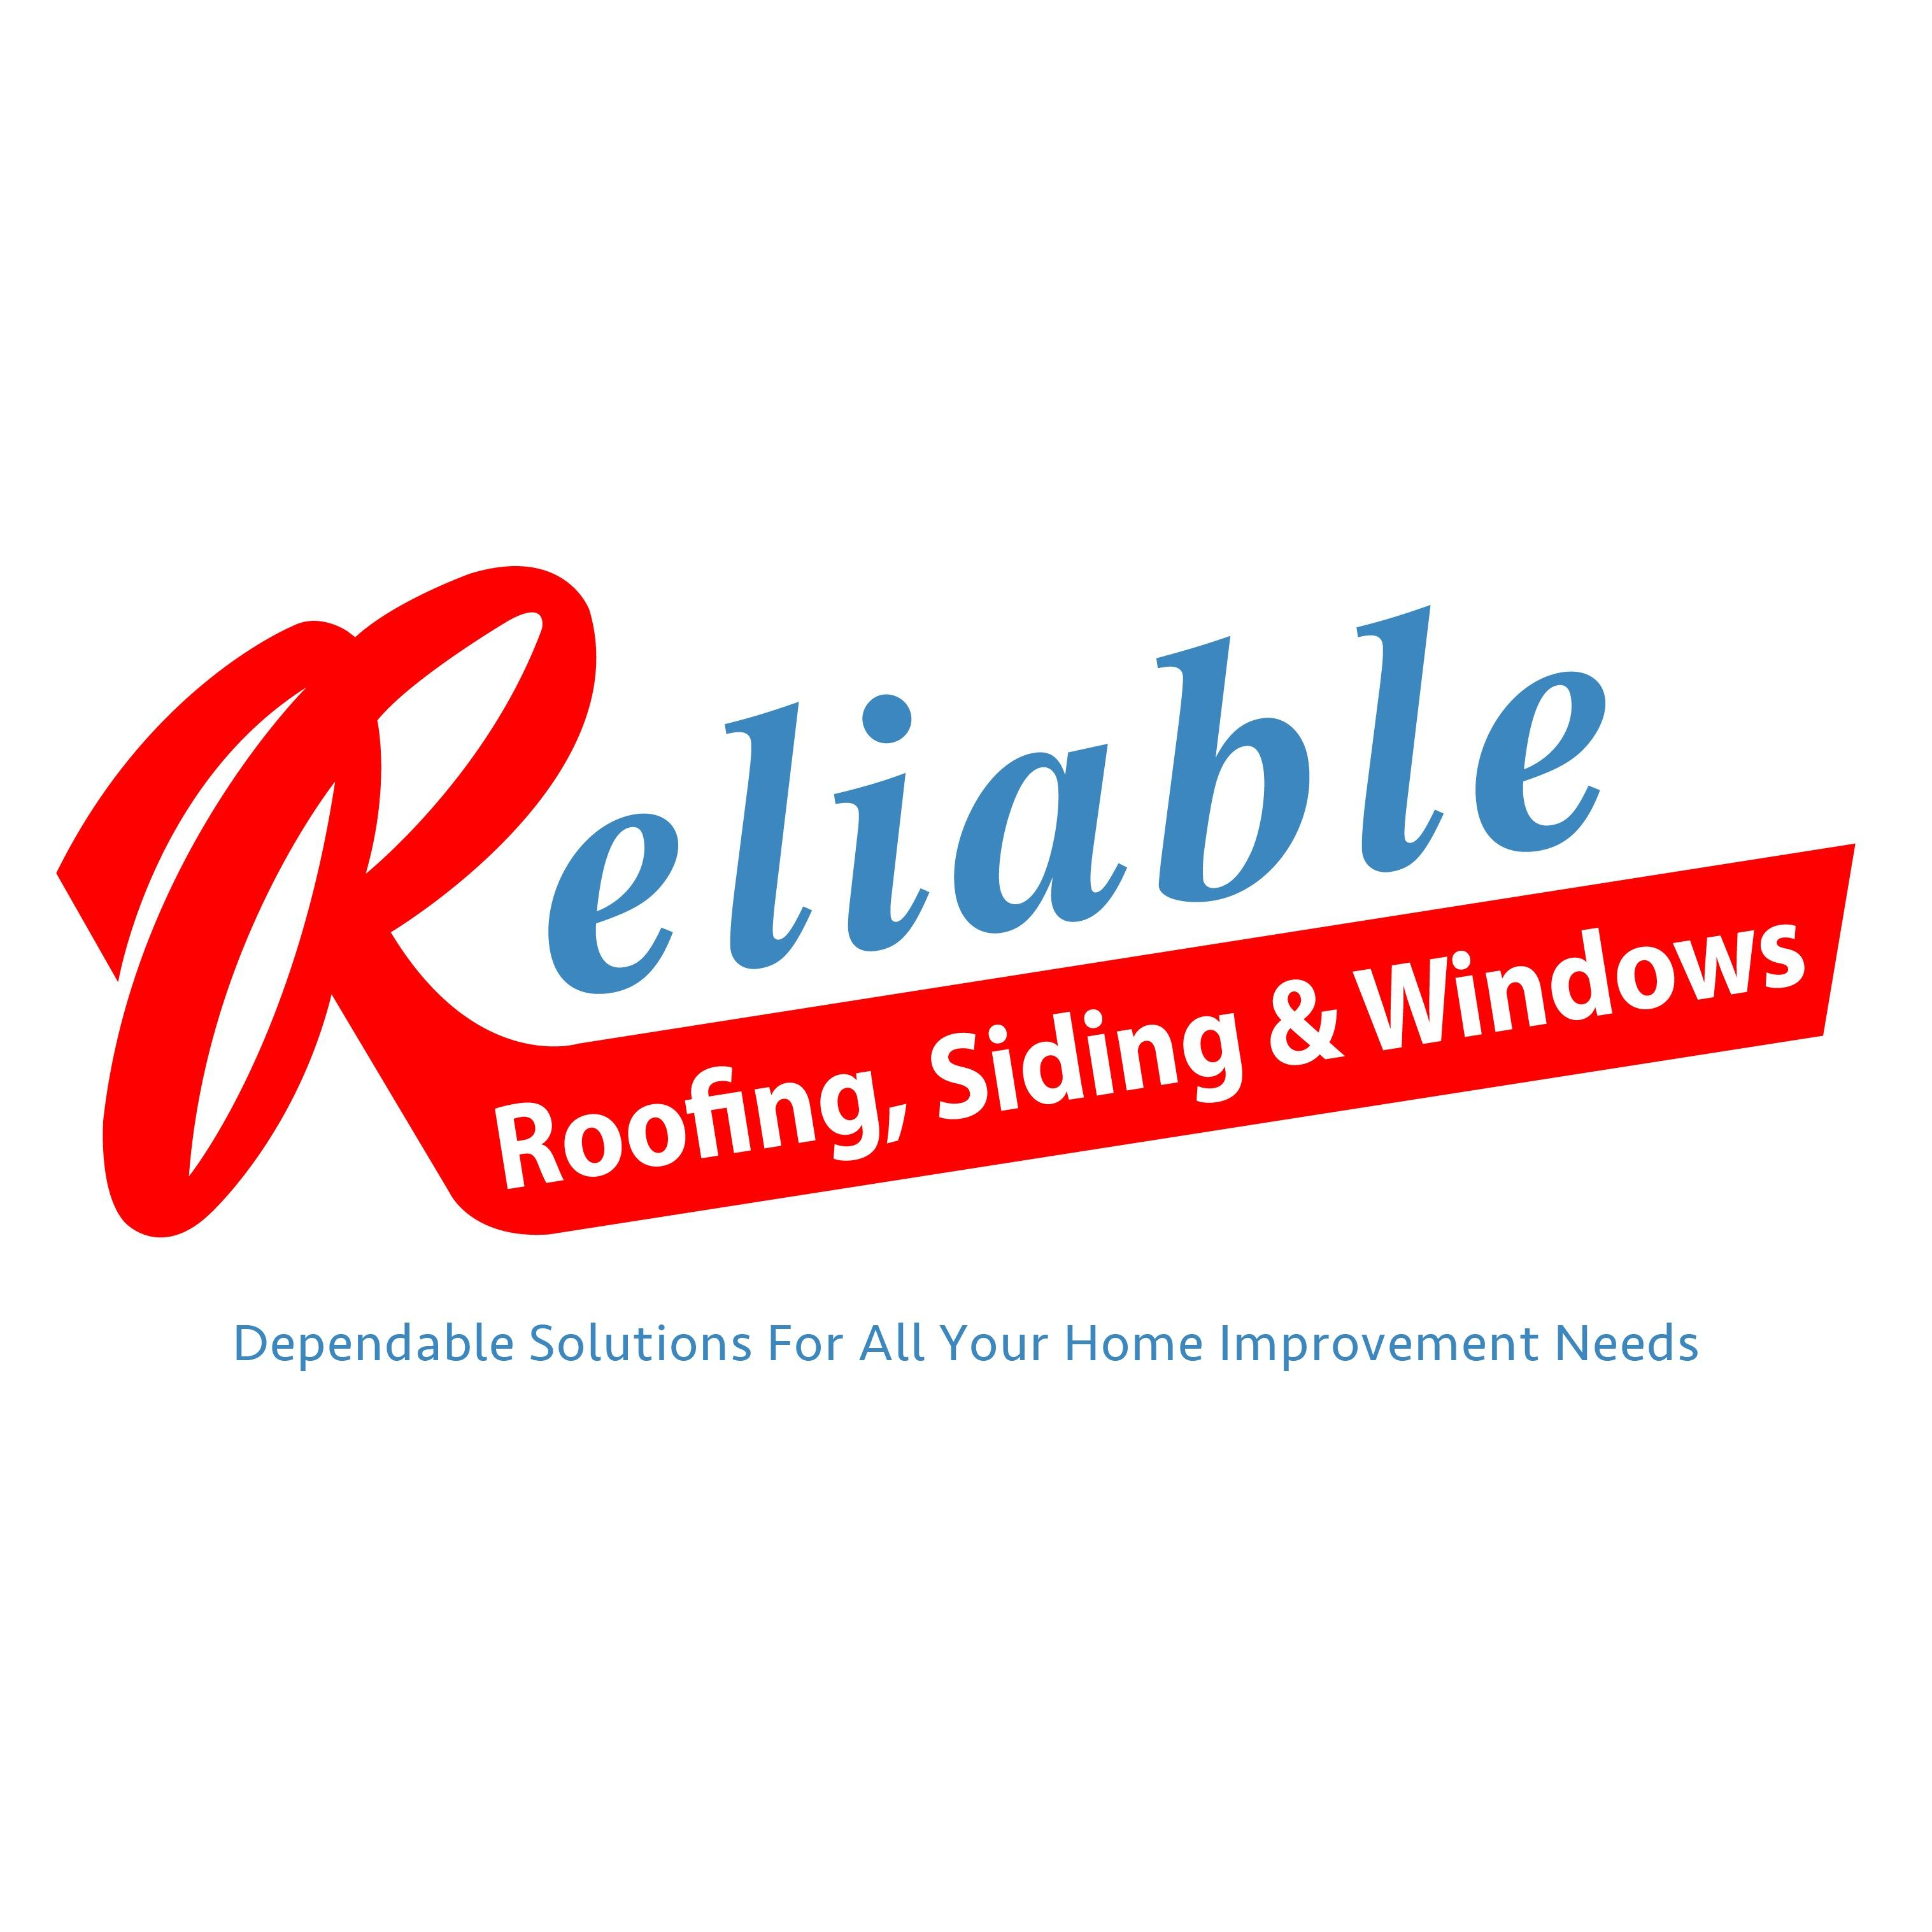 Reliable Roofing, Siding & Windows Logo